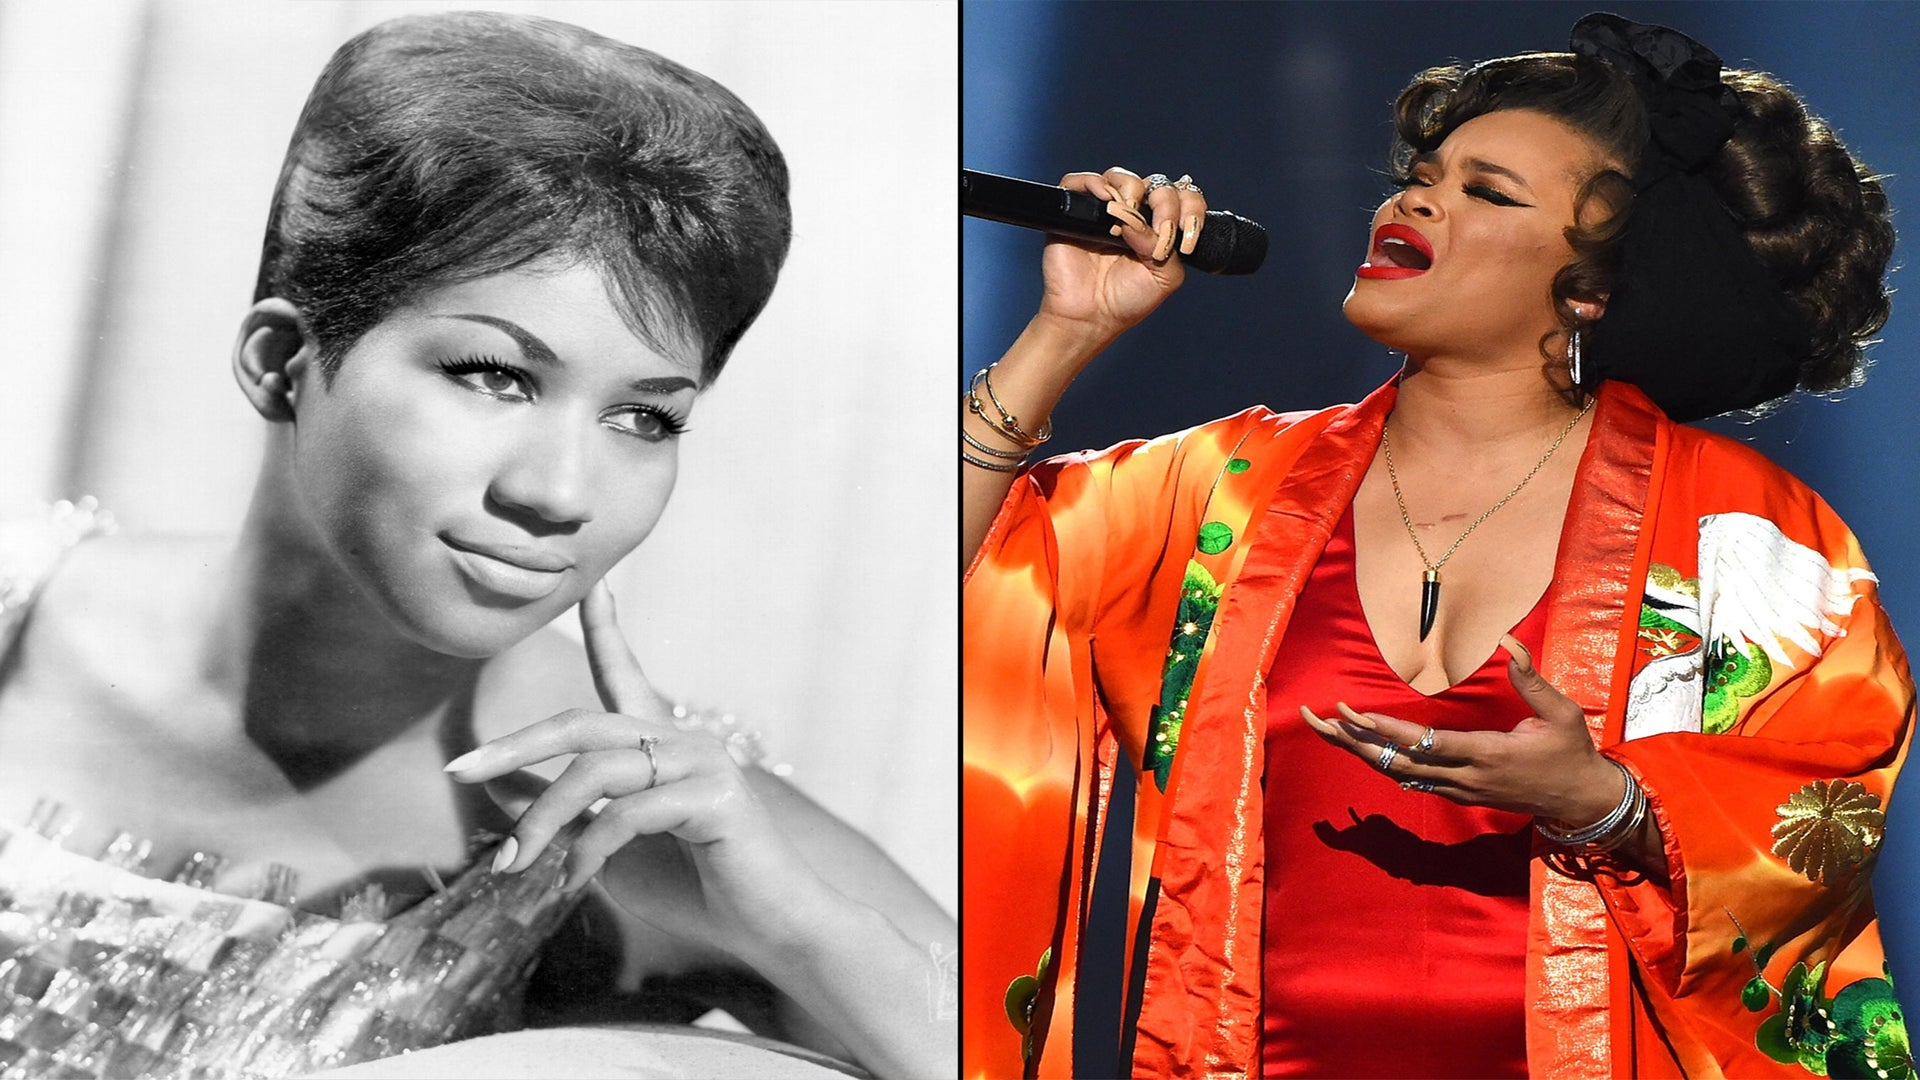 Paying 'R-E-S-P-E-C-T' To Aretha Franklin's 'Respect' 50 Years Later